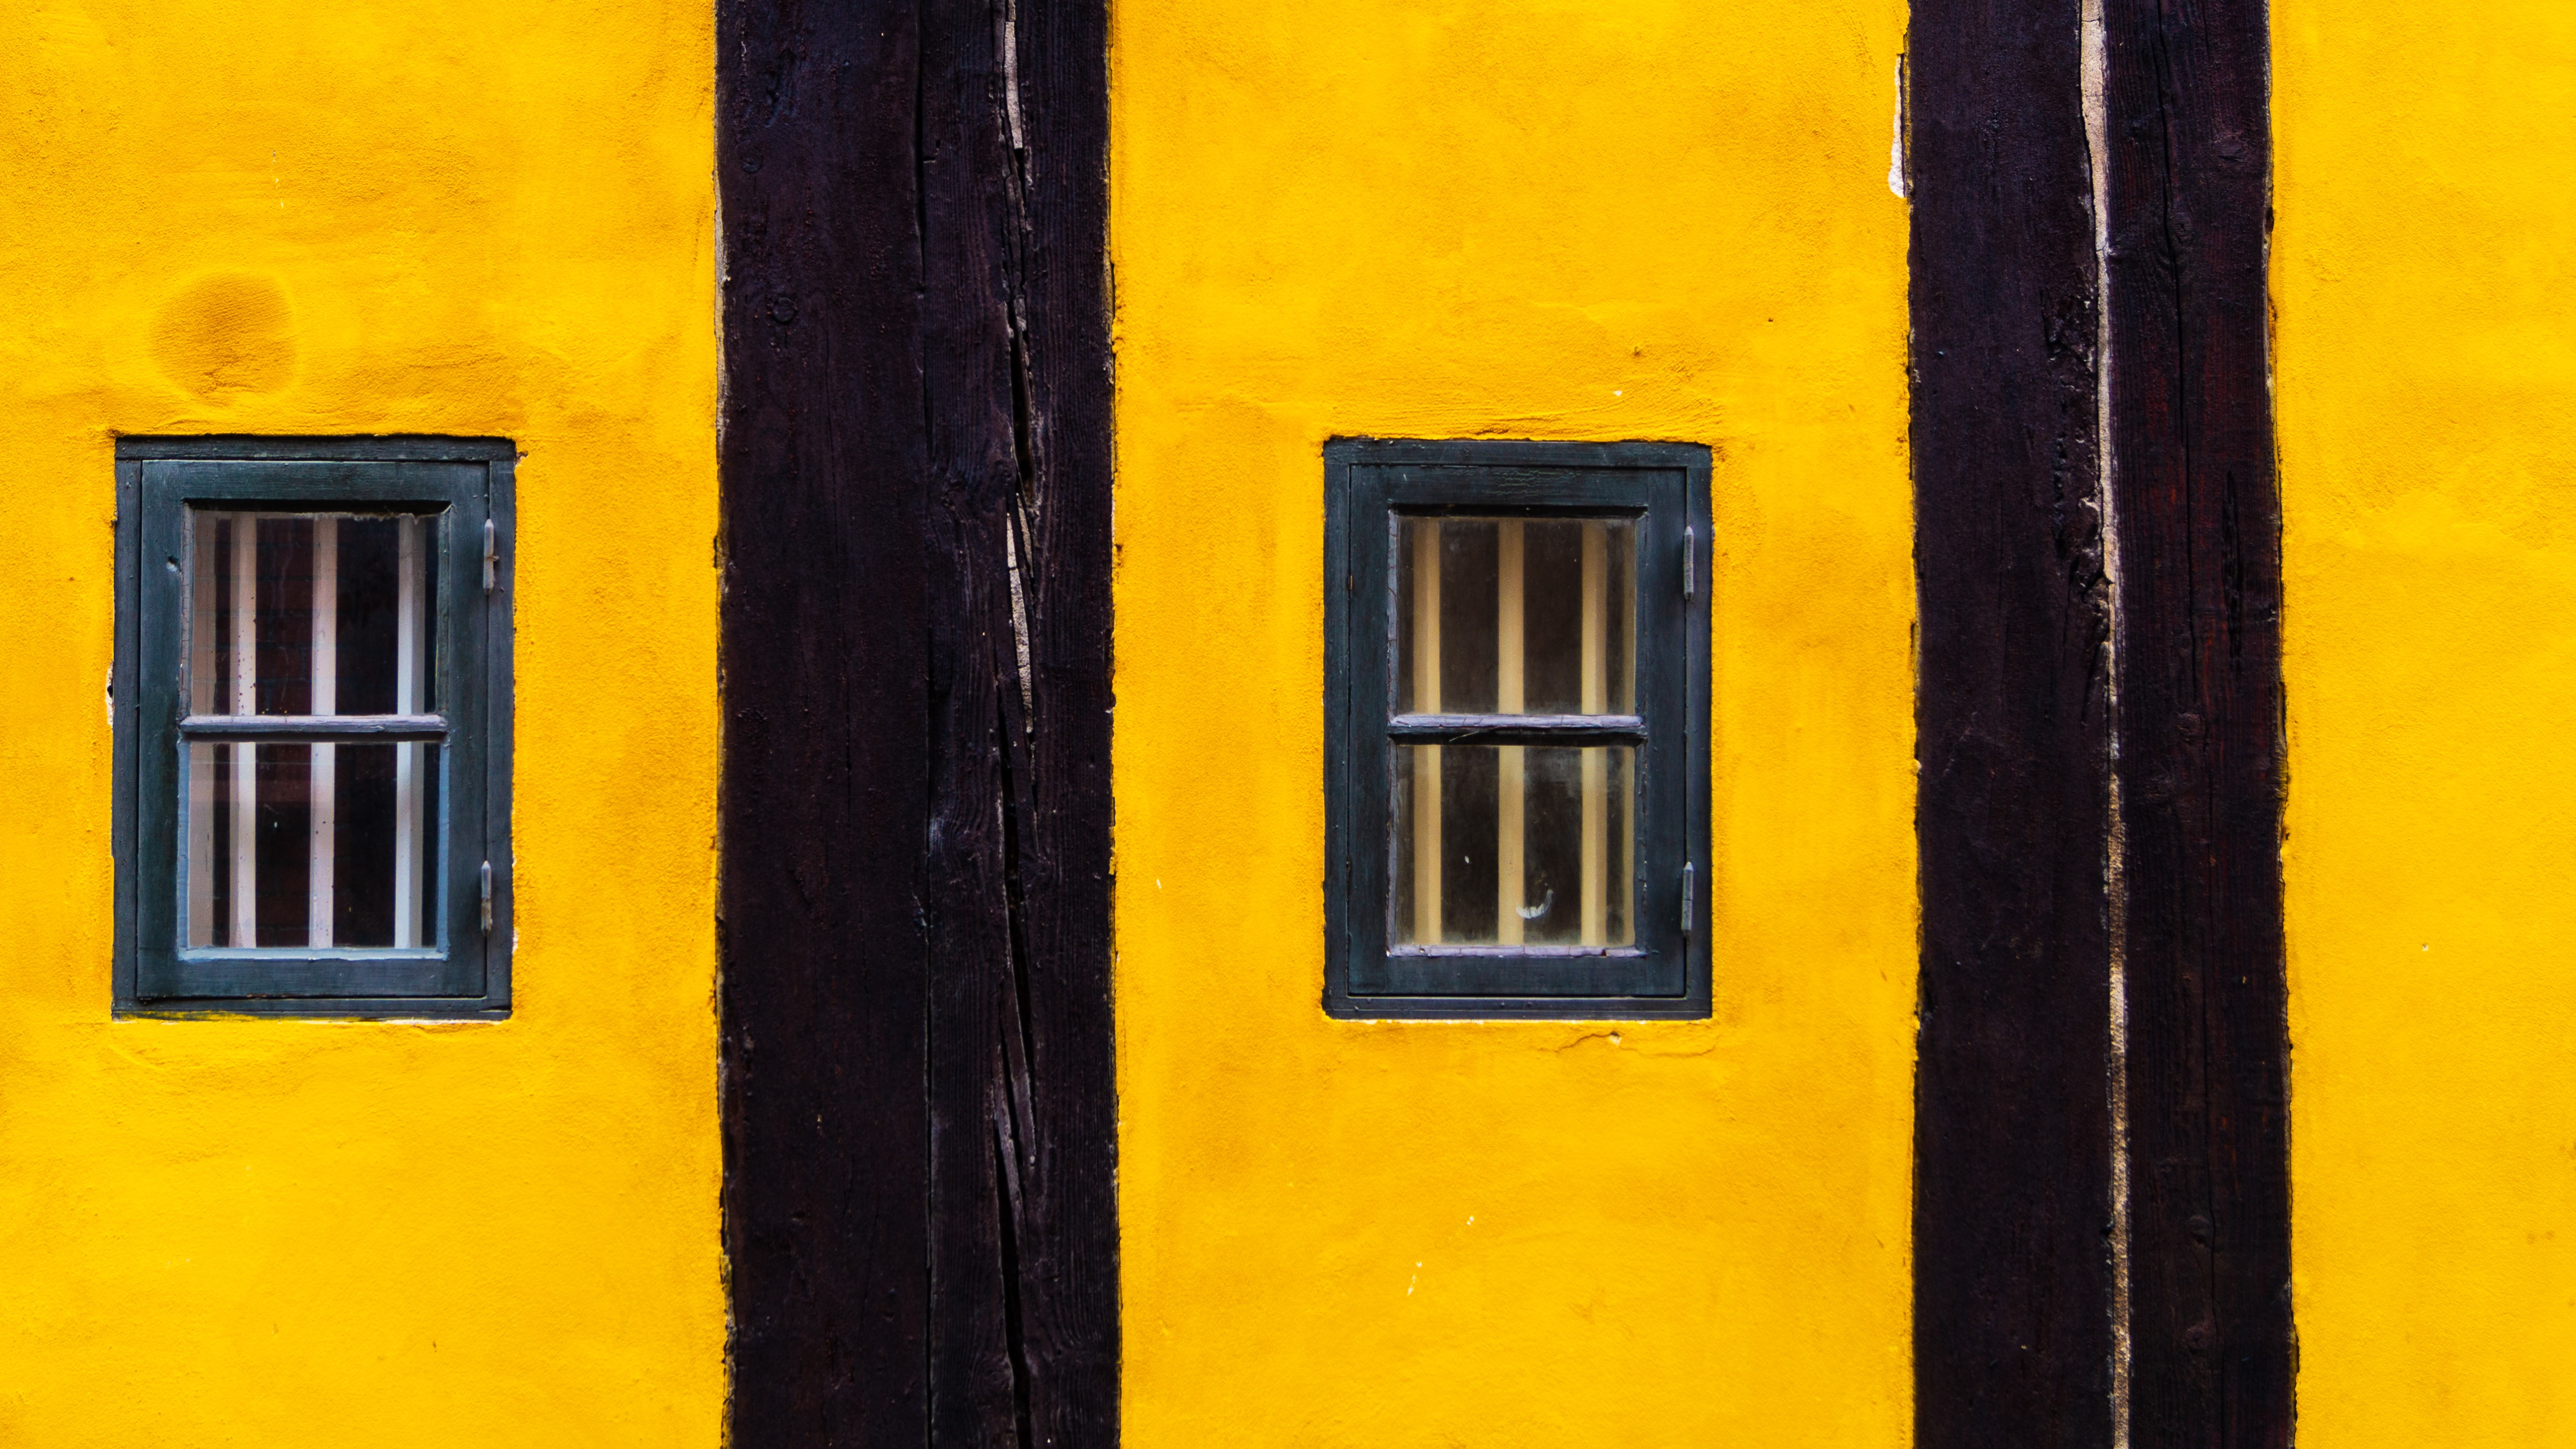 minimalist photography of black and yellow striped windows